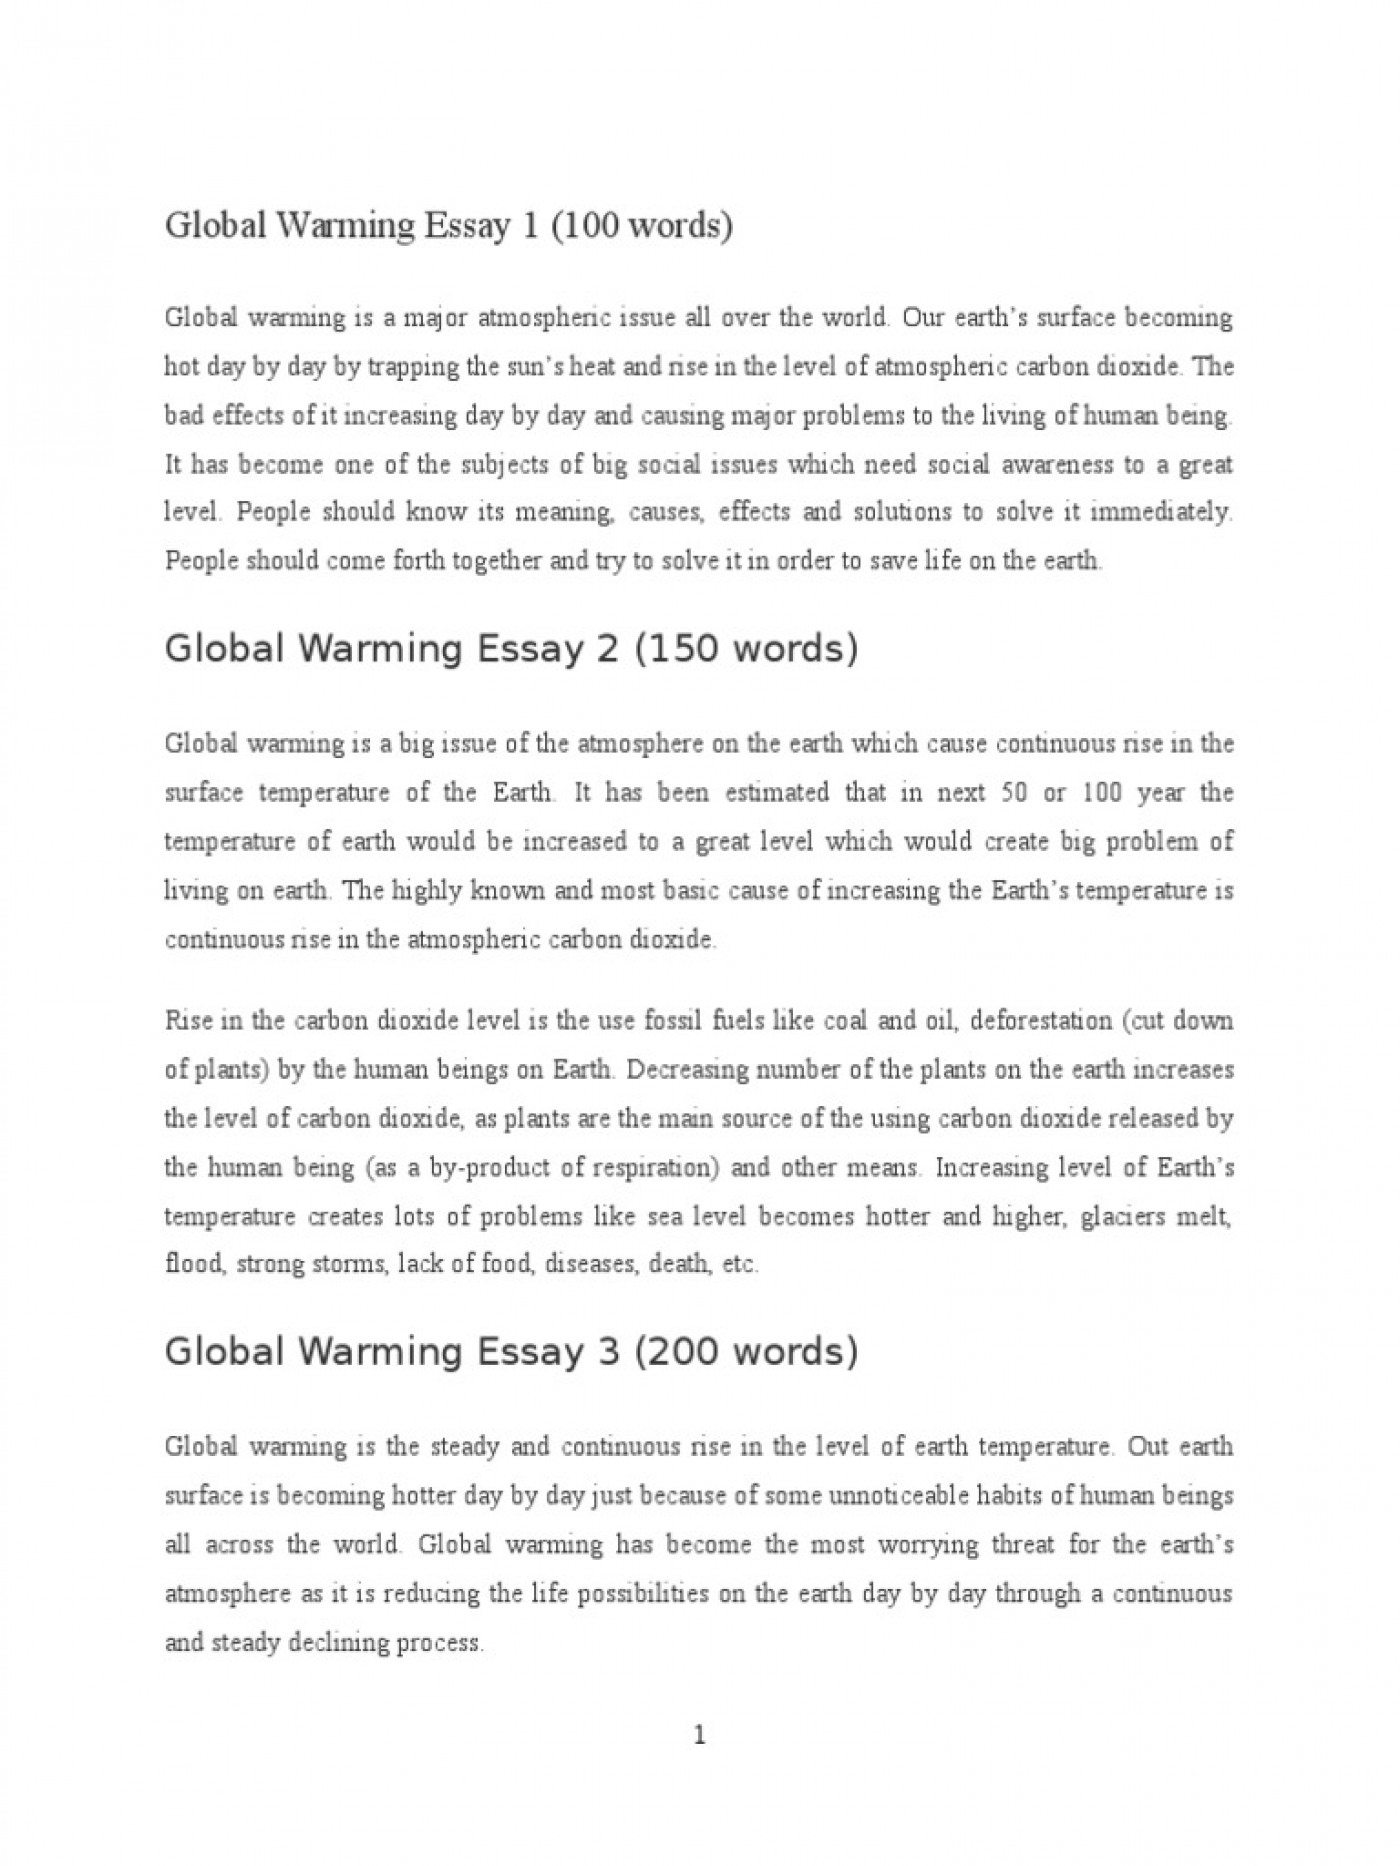 008 Global Warming Essay 1 5882e593b6d87f85288b46ba Unusual Paper Outline Catchy Titles For Ielts Band 9 1400